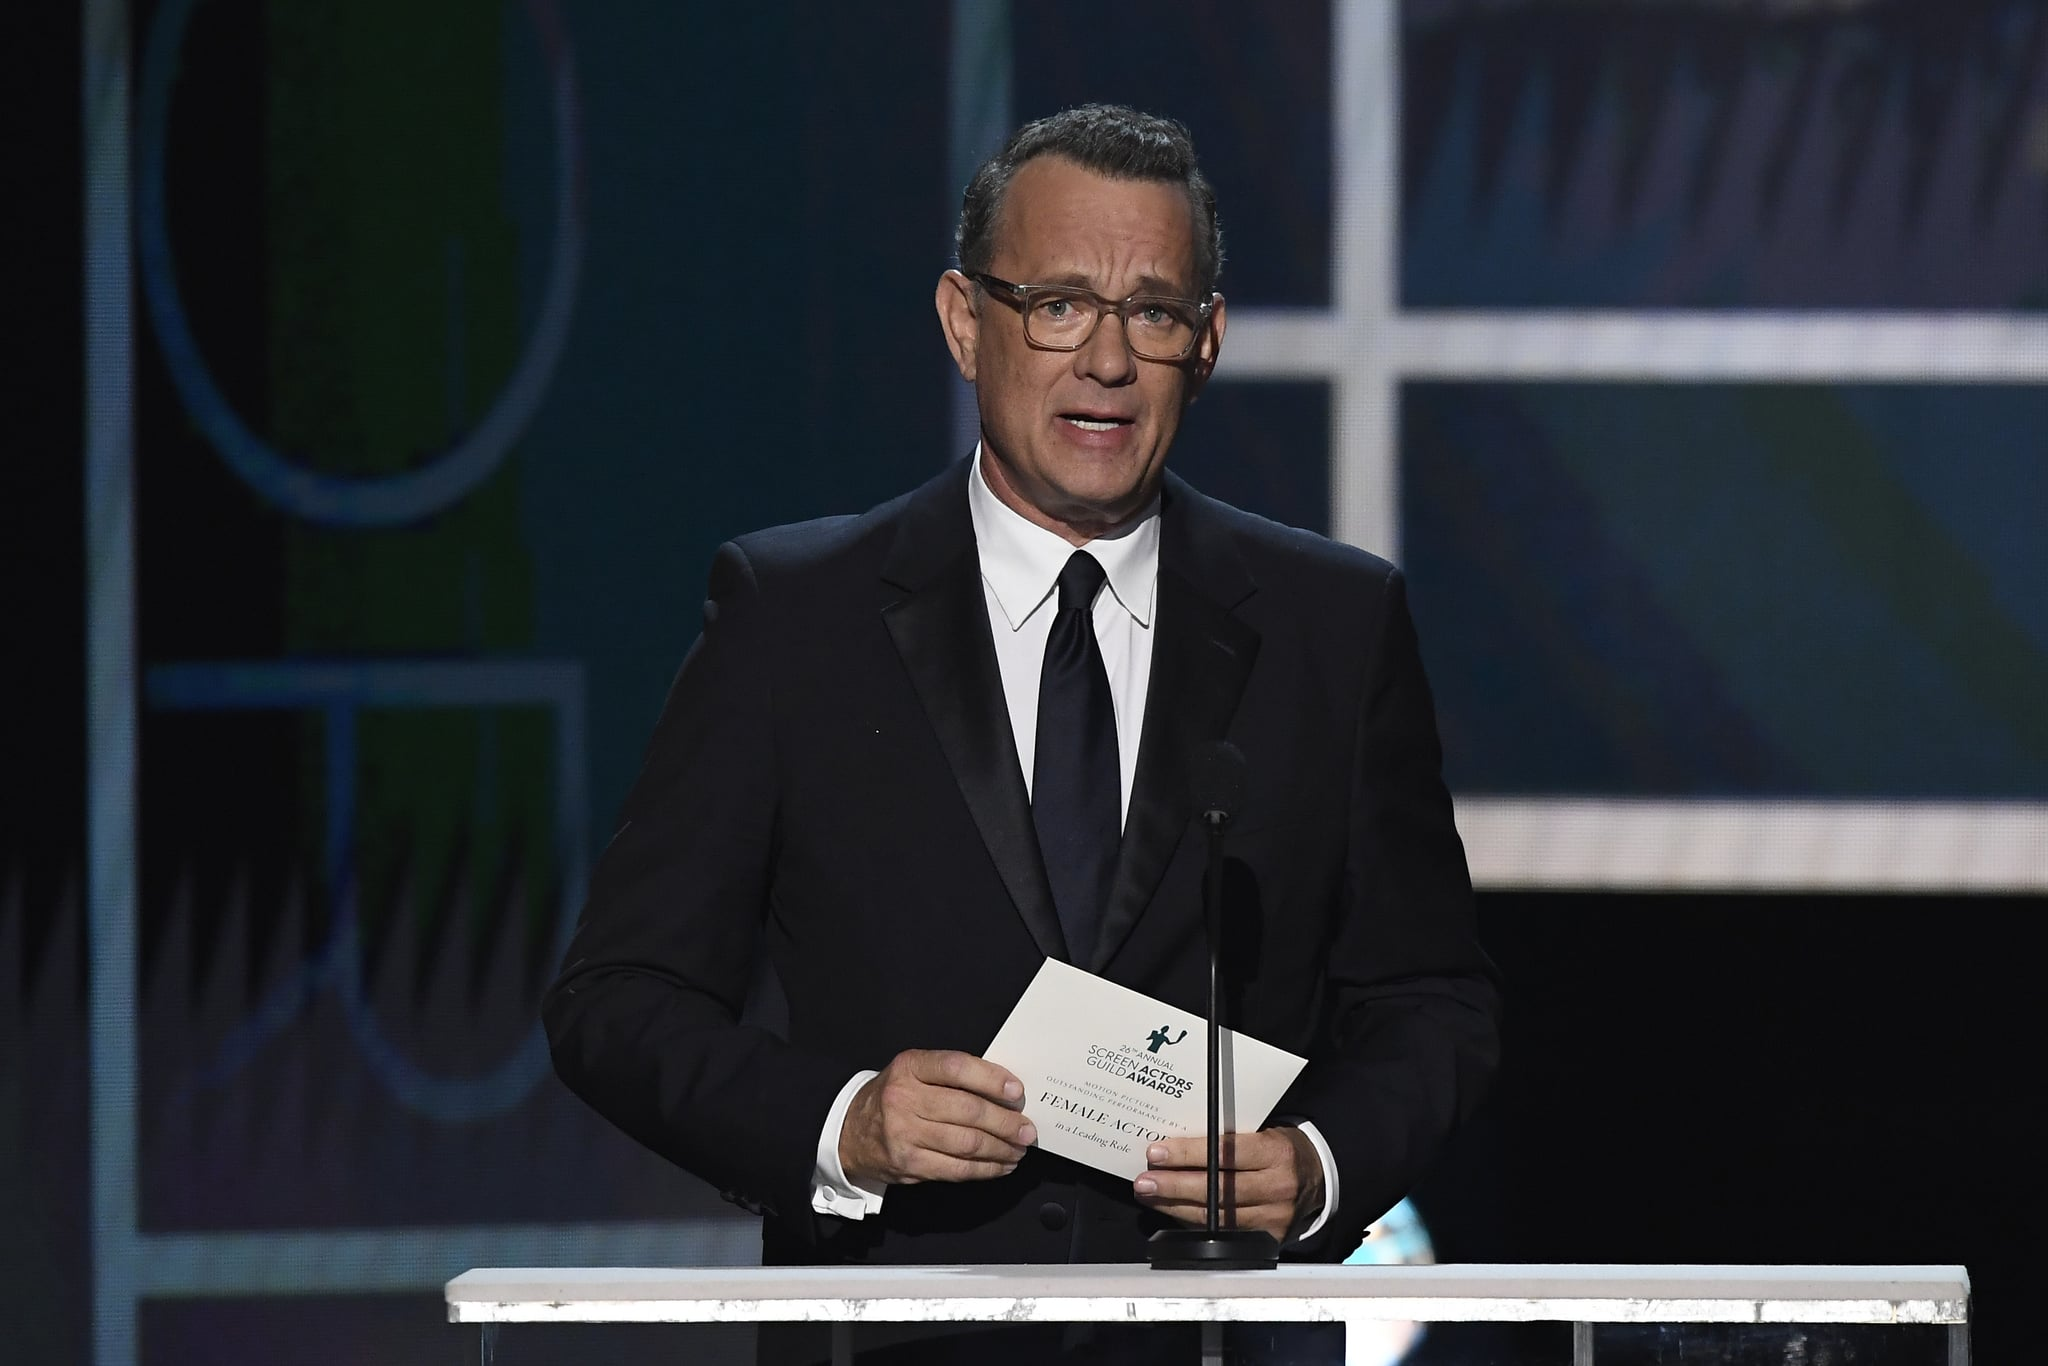 LOS ANGELES, CALIFORNIA - JANUARY 19: Tom Hanks speaks onstage during the 26th Annual Screen Actors Guild Awards at The Shrine Auditorium on January 19, 2020 in Los Angeles, California. 721359 (Photo by Kevork Djansezian/Getty Images for Turner)